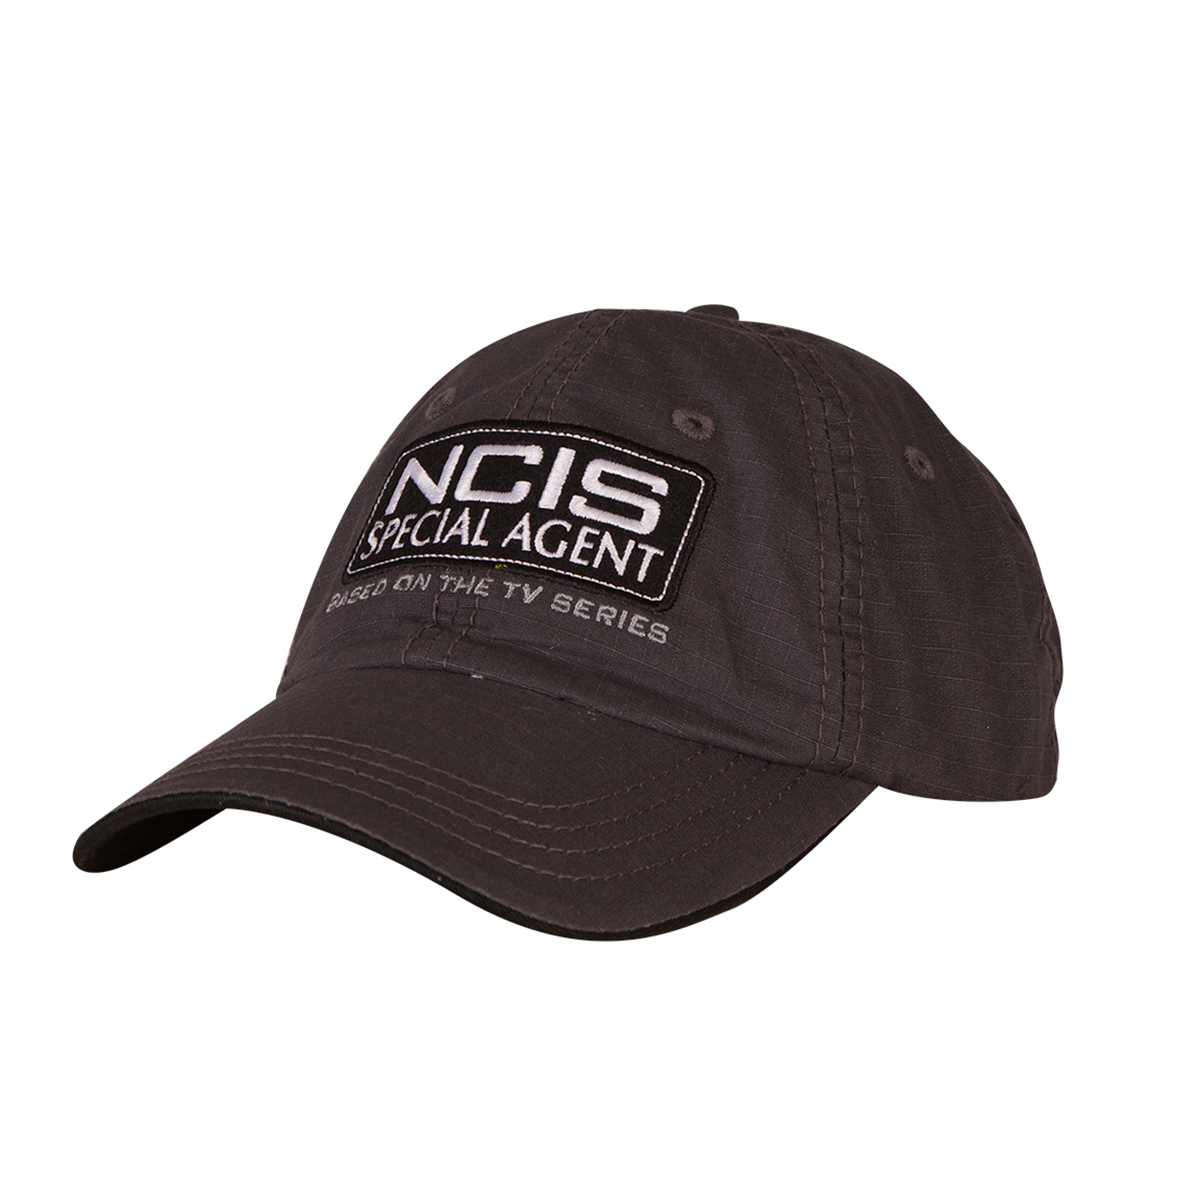 NCIS Special Agent Embroidered Hat - Grey